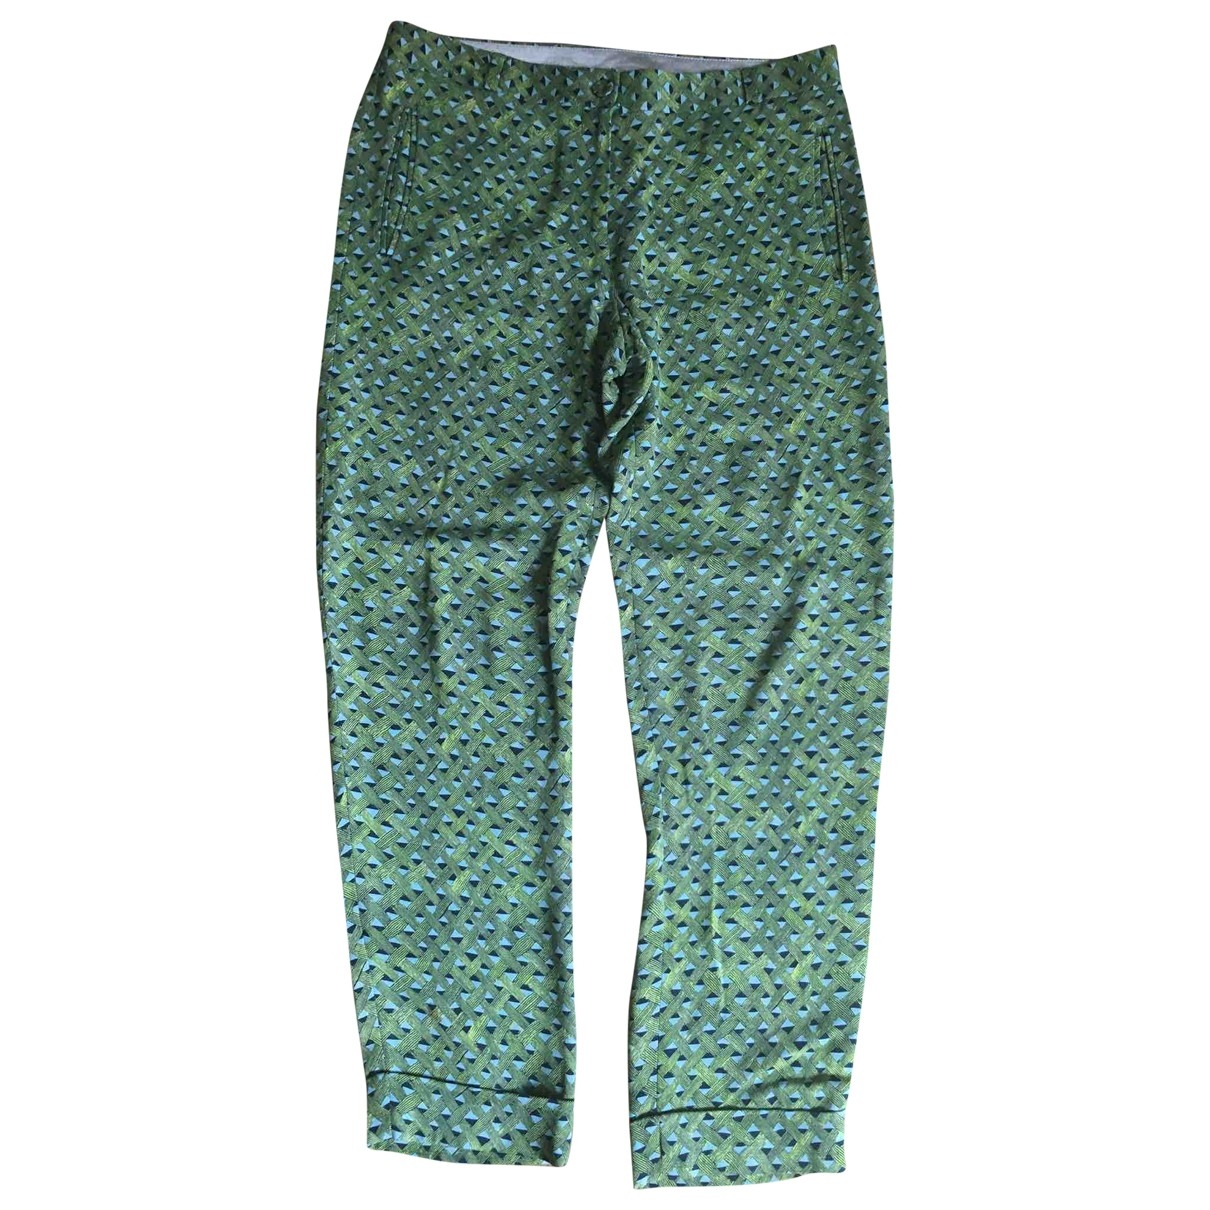 Mauro Grifoni \N Green Trousers for Women 42 IT